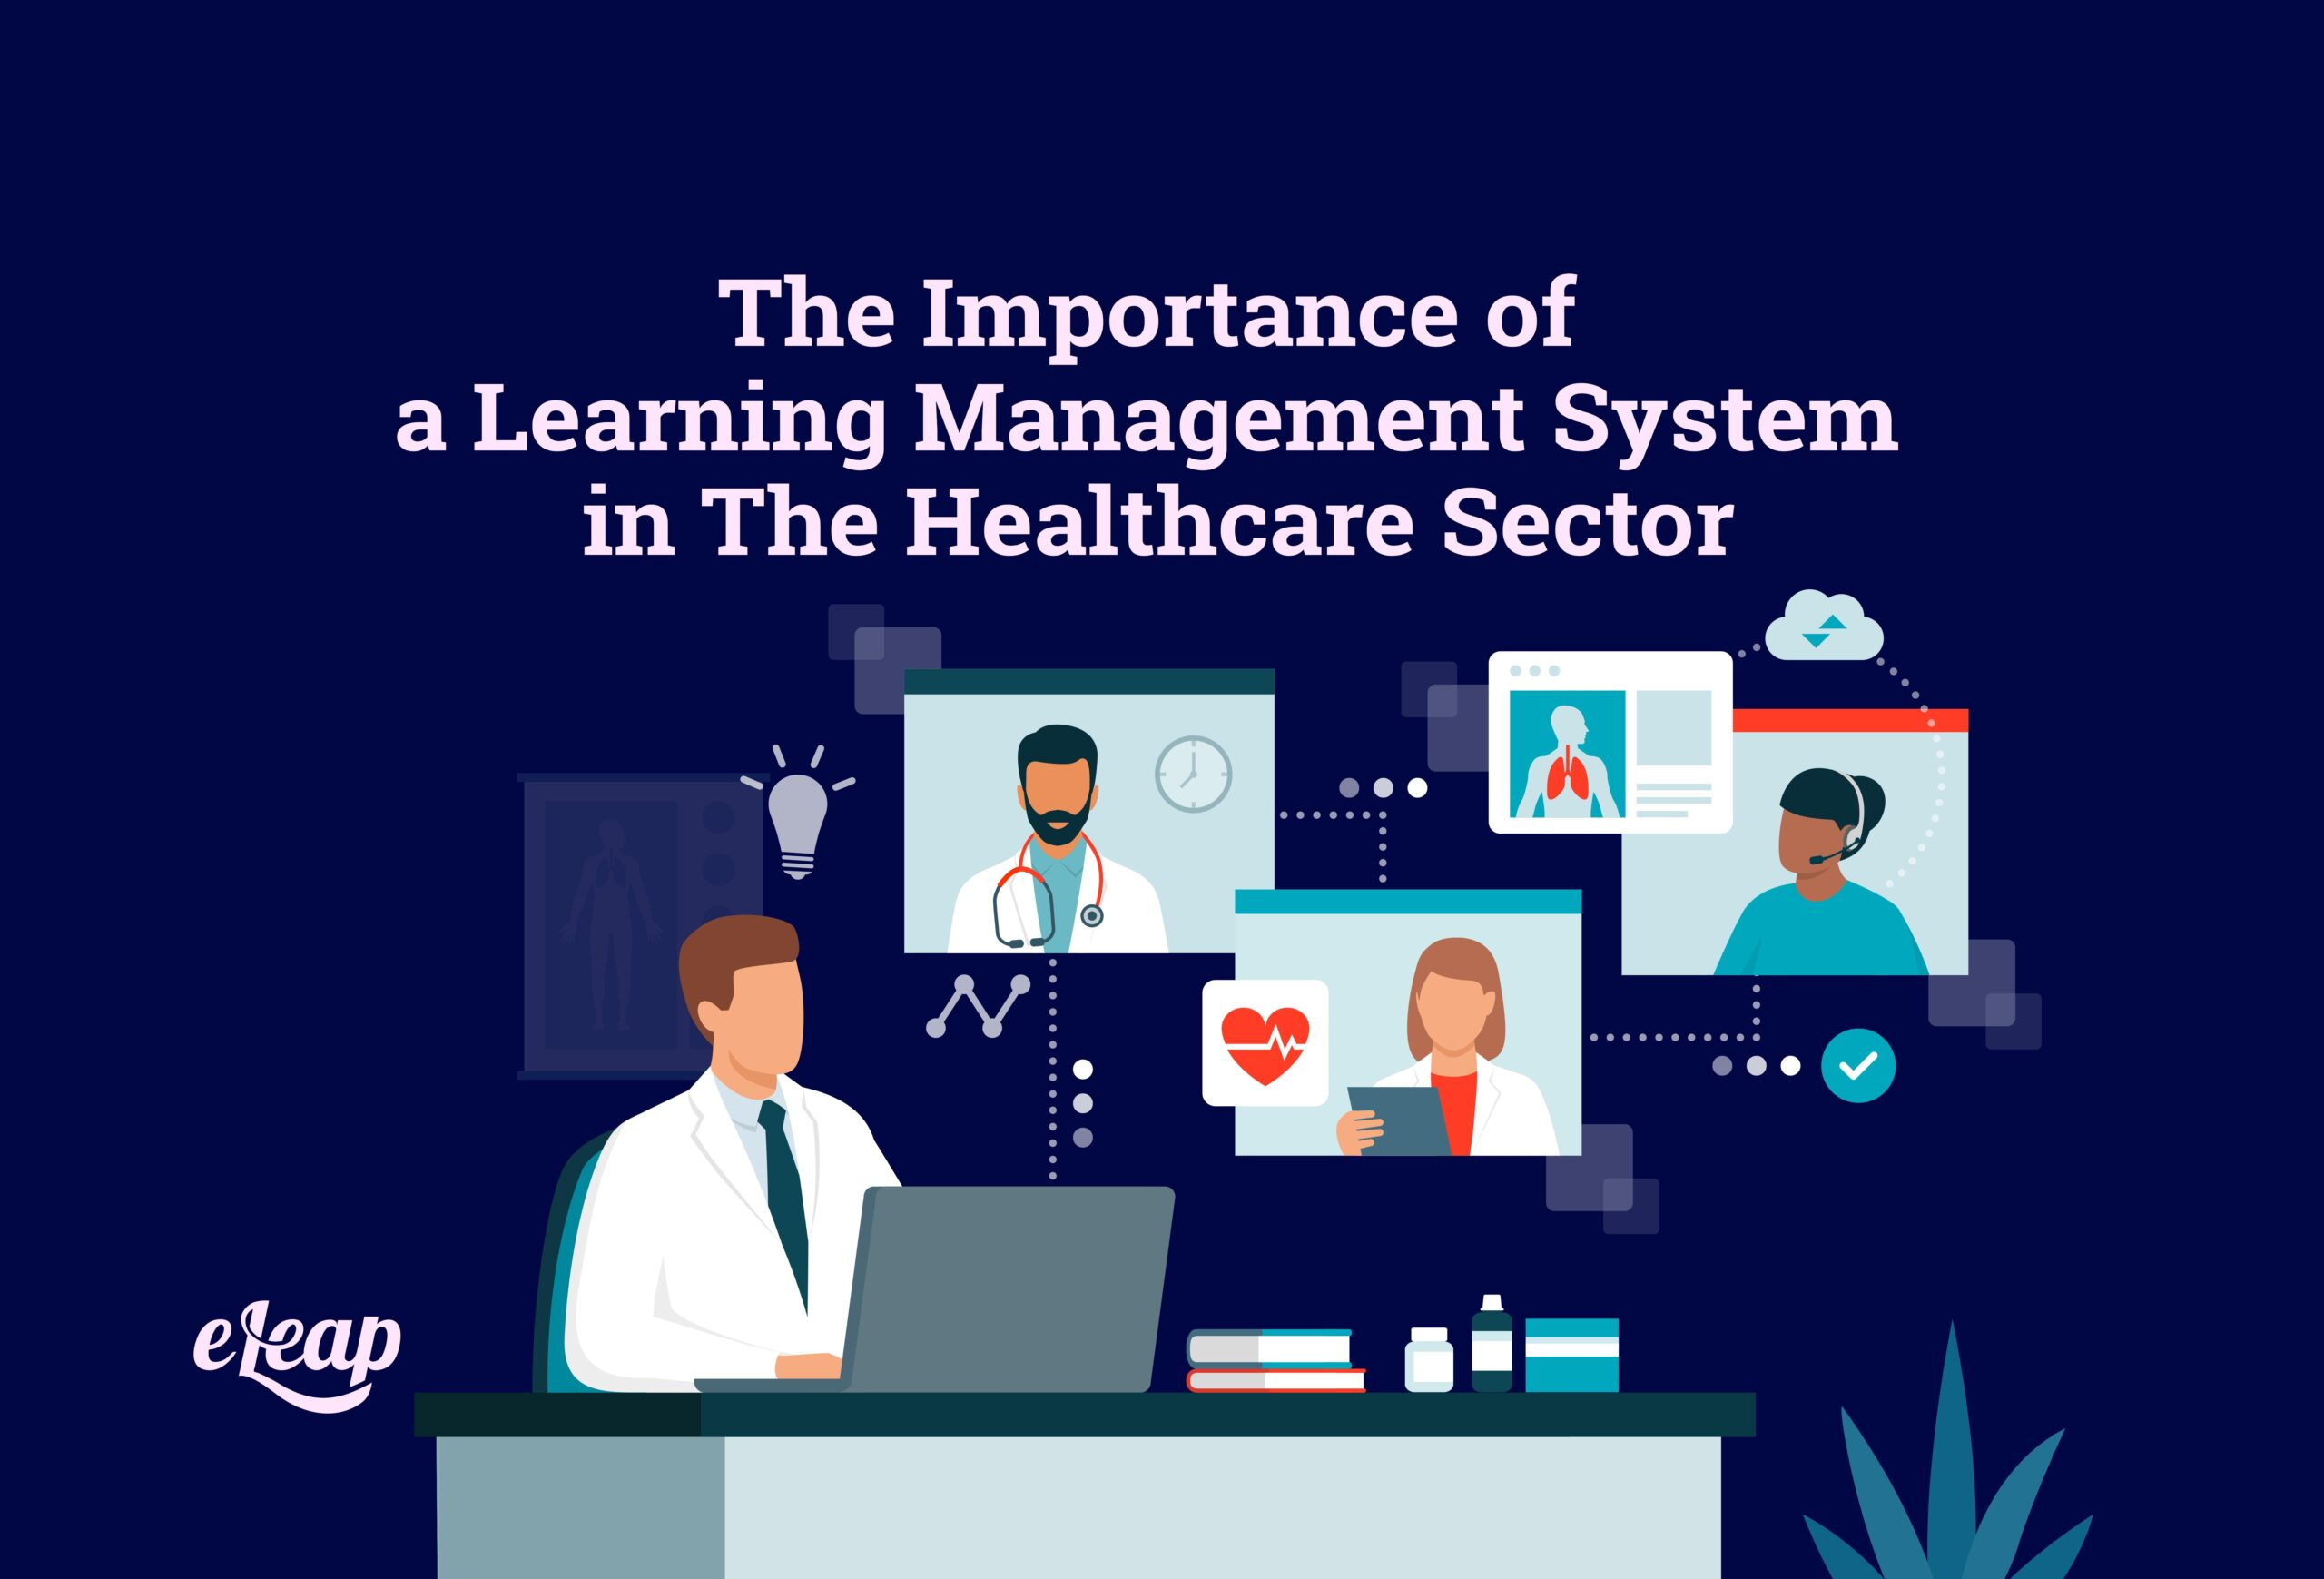 The Importance of a Learning Management System in The Healthcare Sector